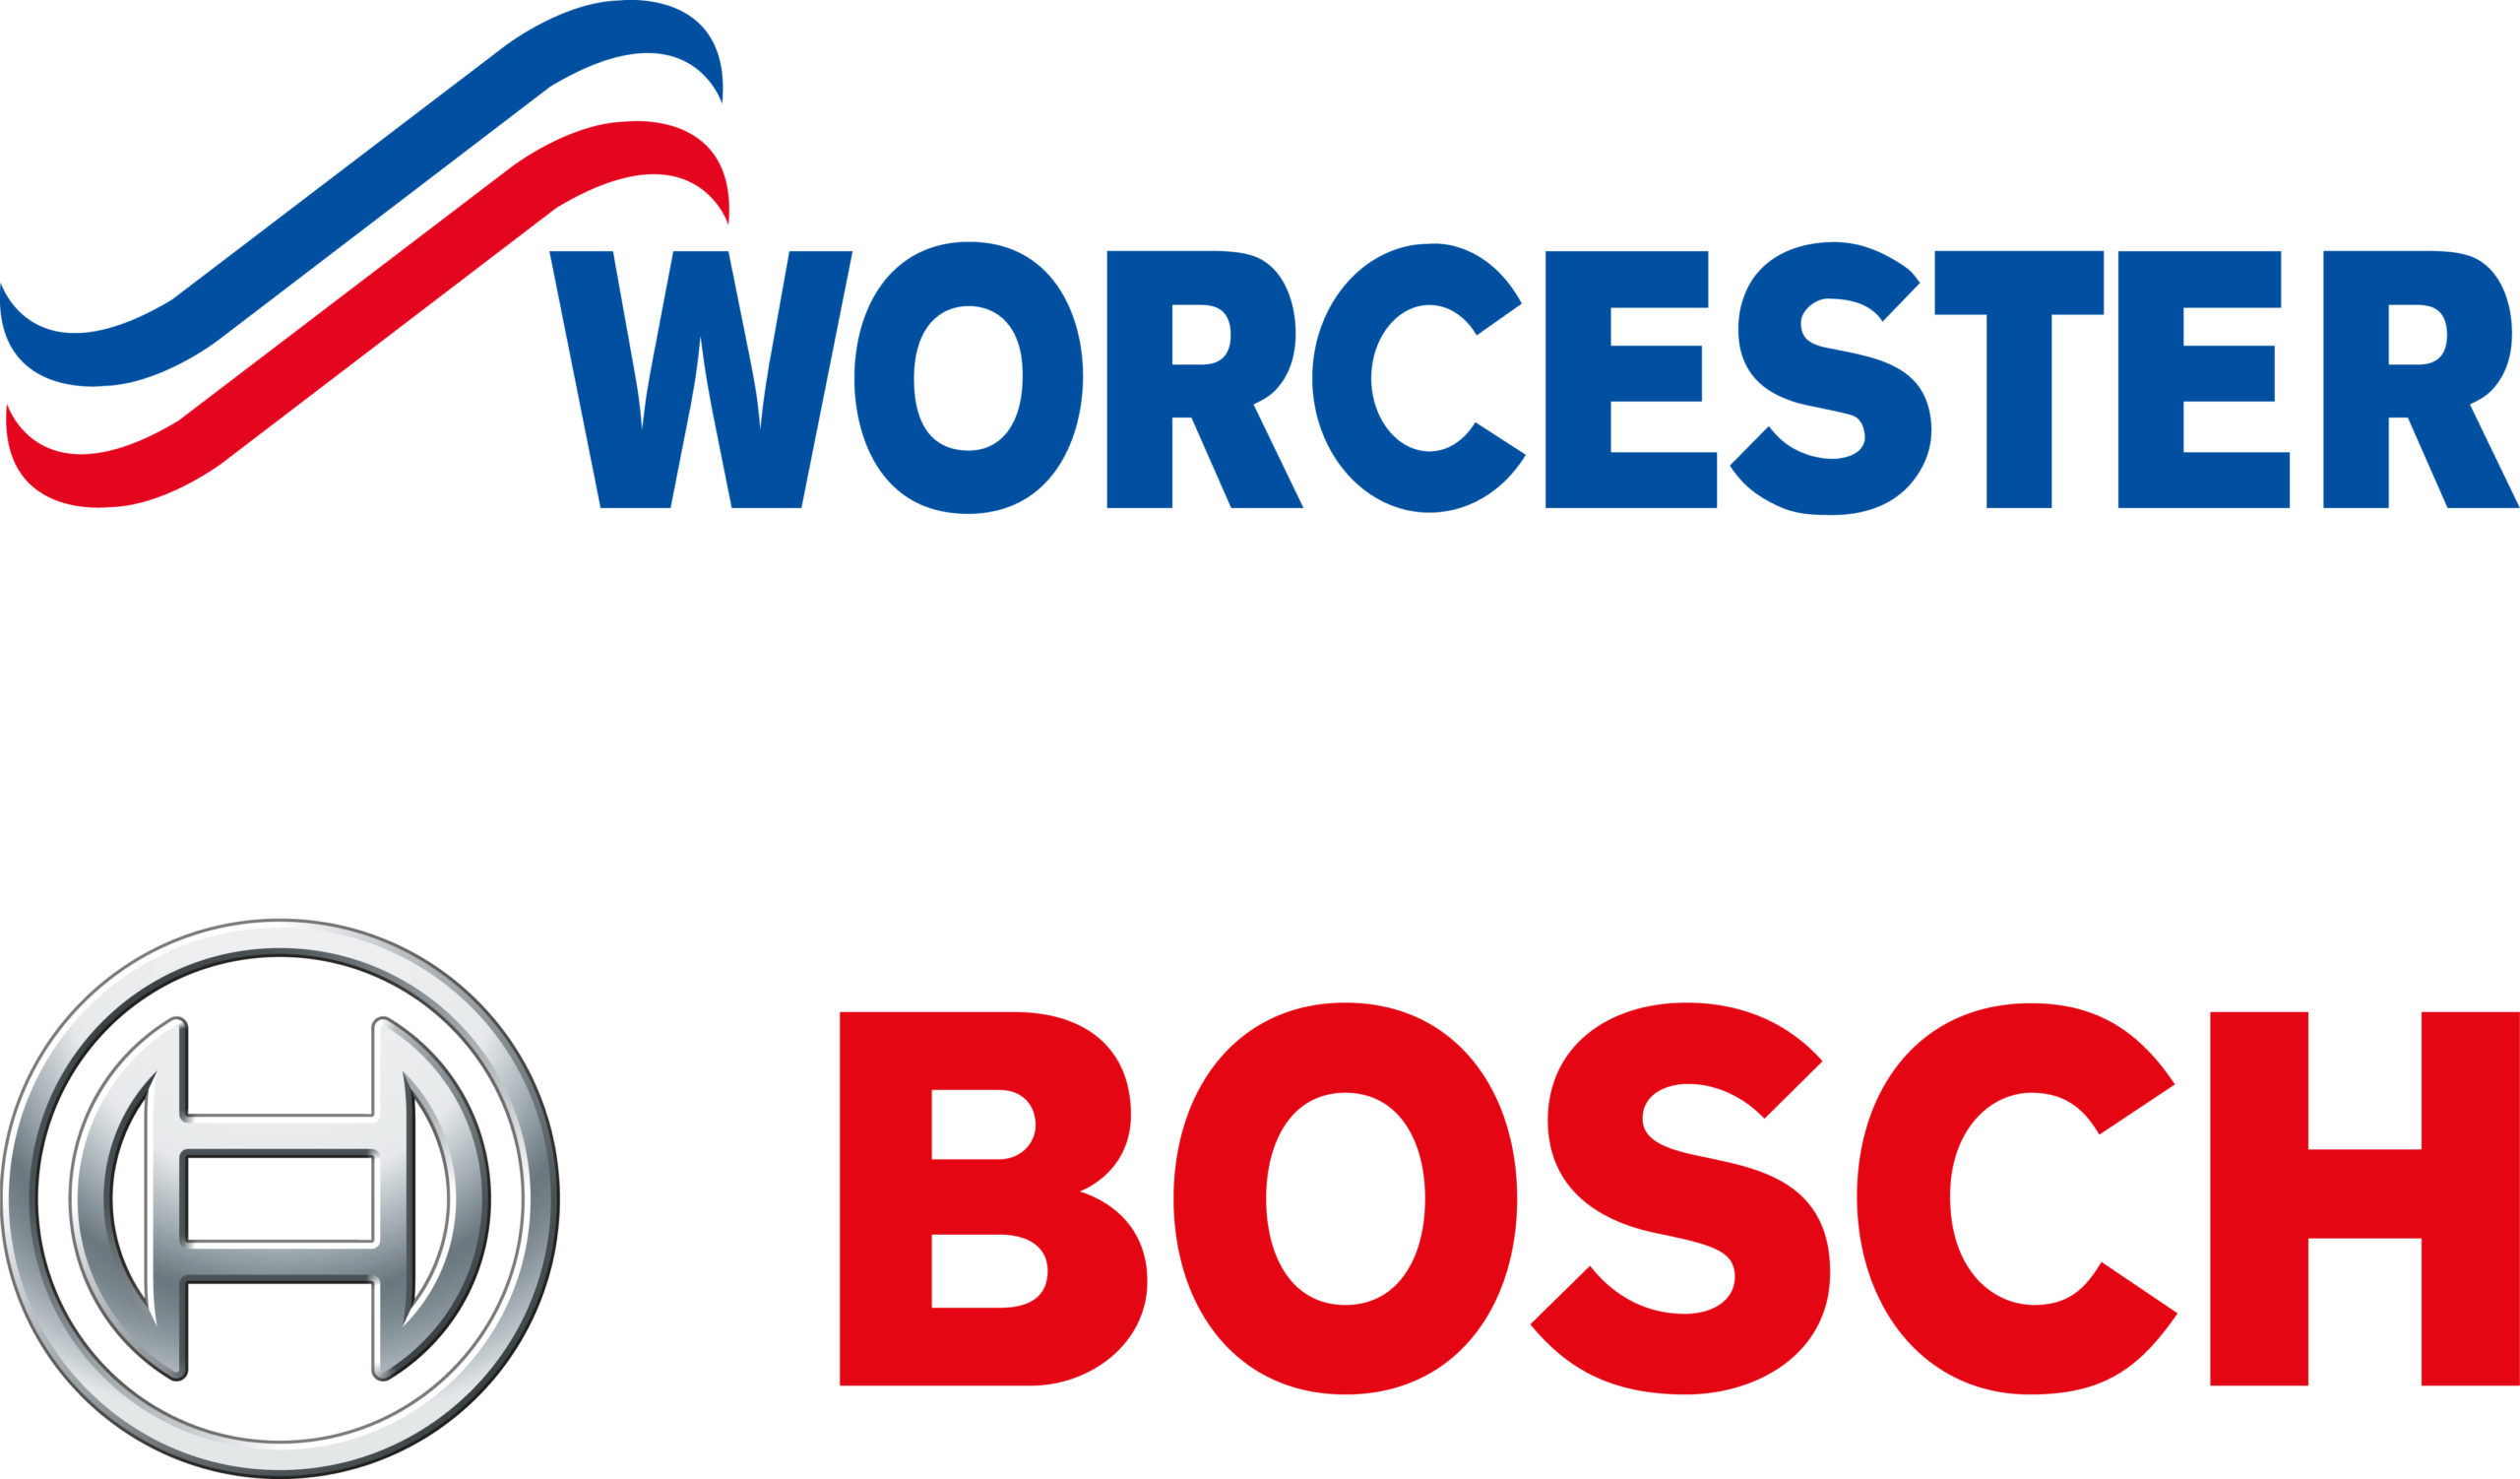 Worcs&Bosch Stacked NO SUPERGRAPHIC